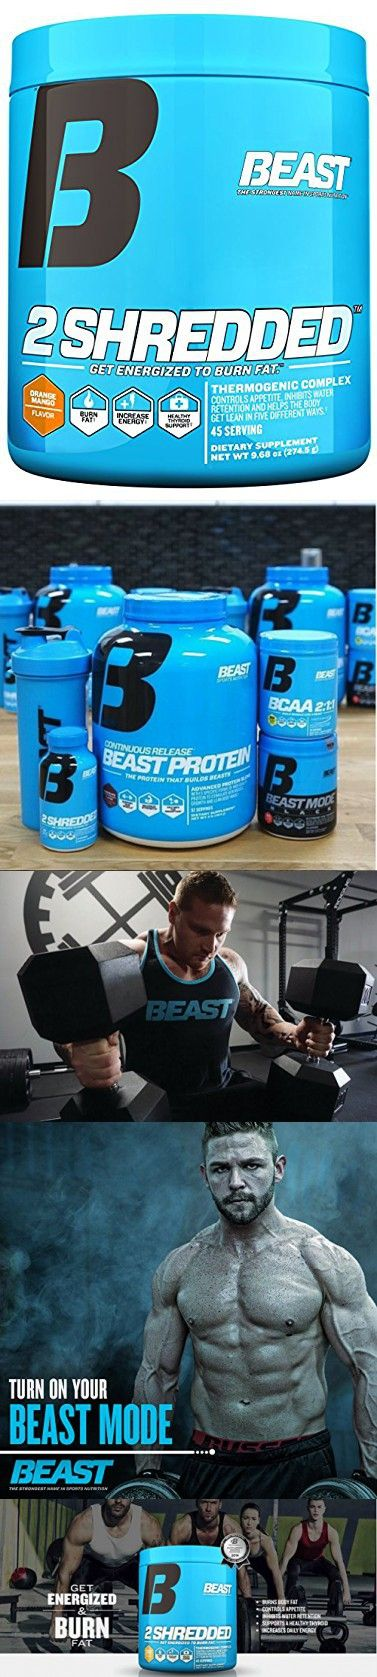 Beast Sports Nutrition 2 Shredded Powder Thermogenic Weight Loss Supplement. Acts As a Fat Burner, Appetite Suppressant and Diuretic To Help Shed Fat and Excess Water. 45 Servings, Orange Mango